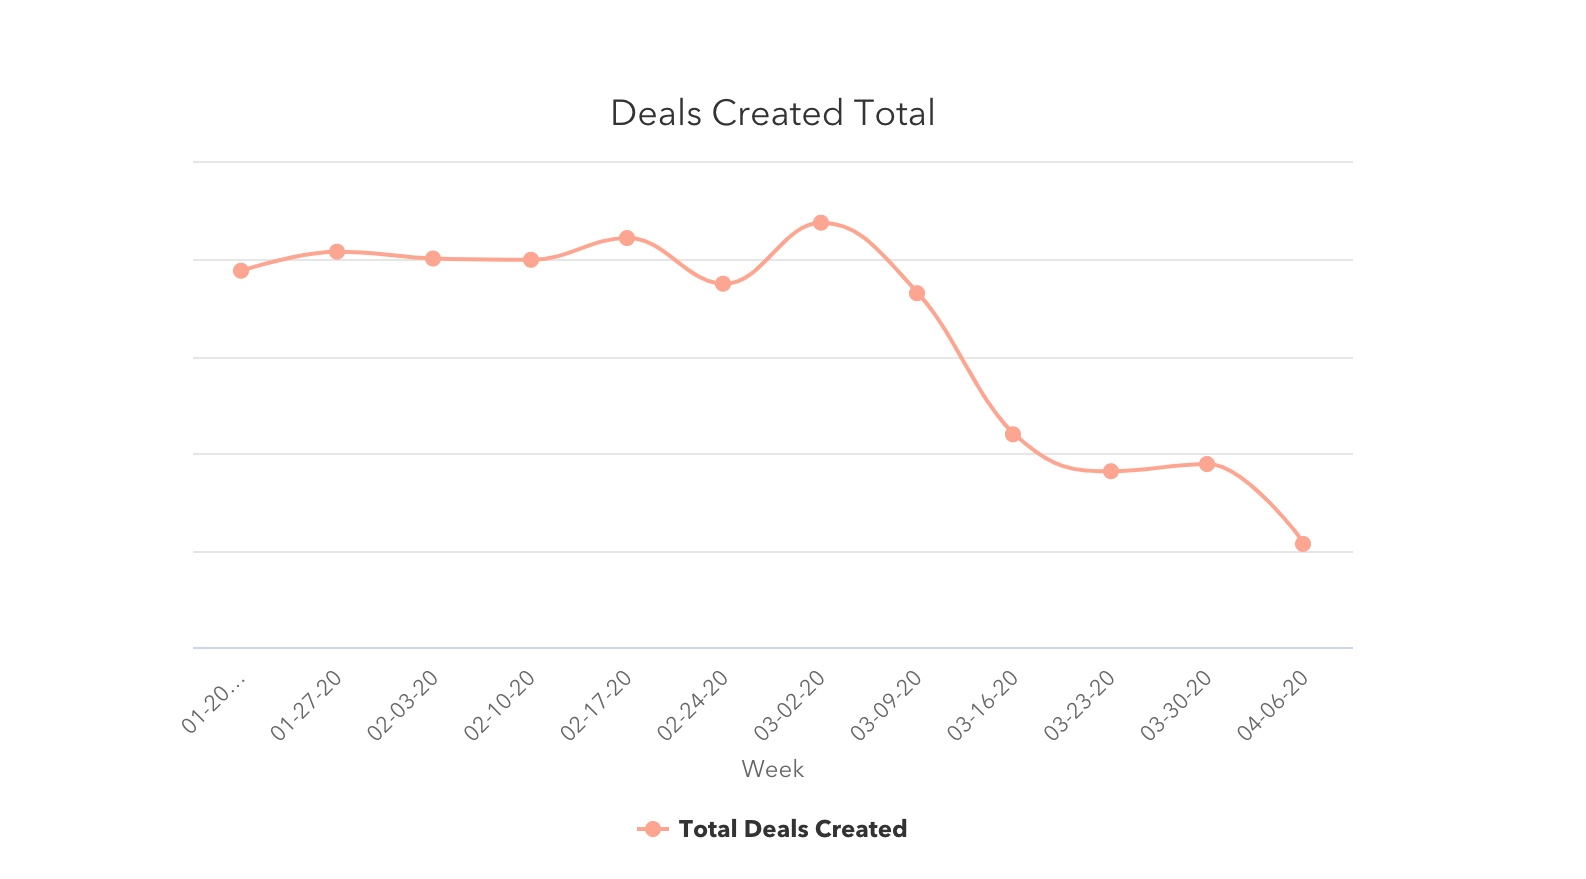 Deals created Total